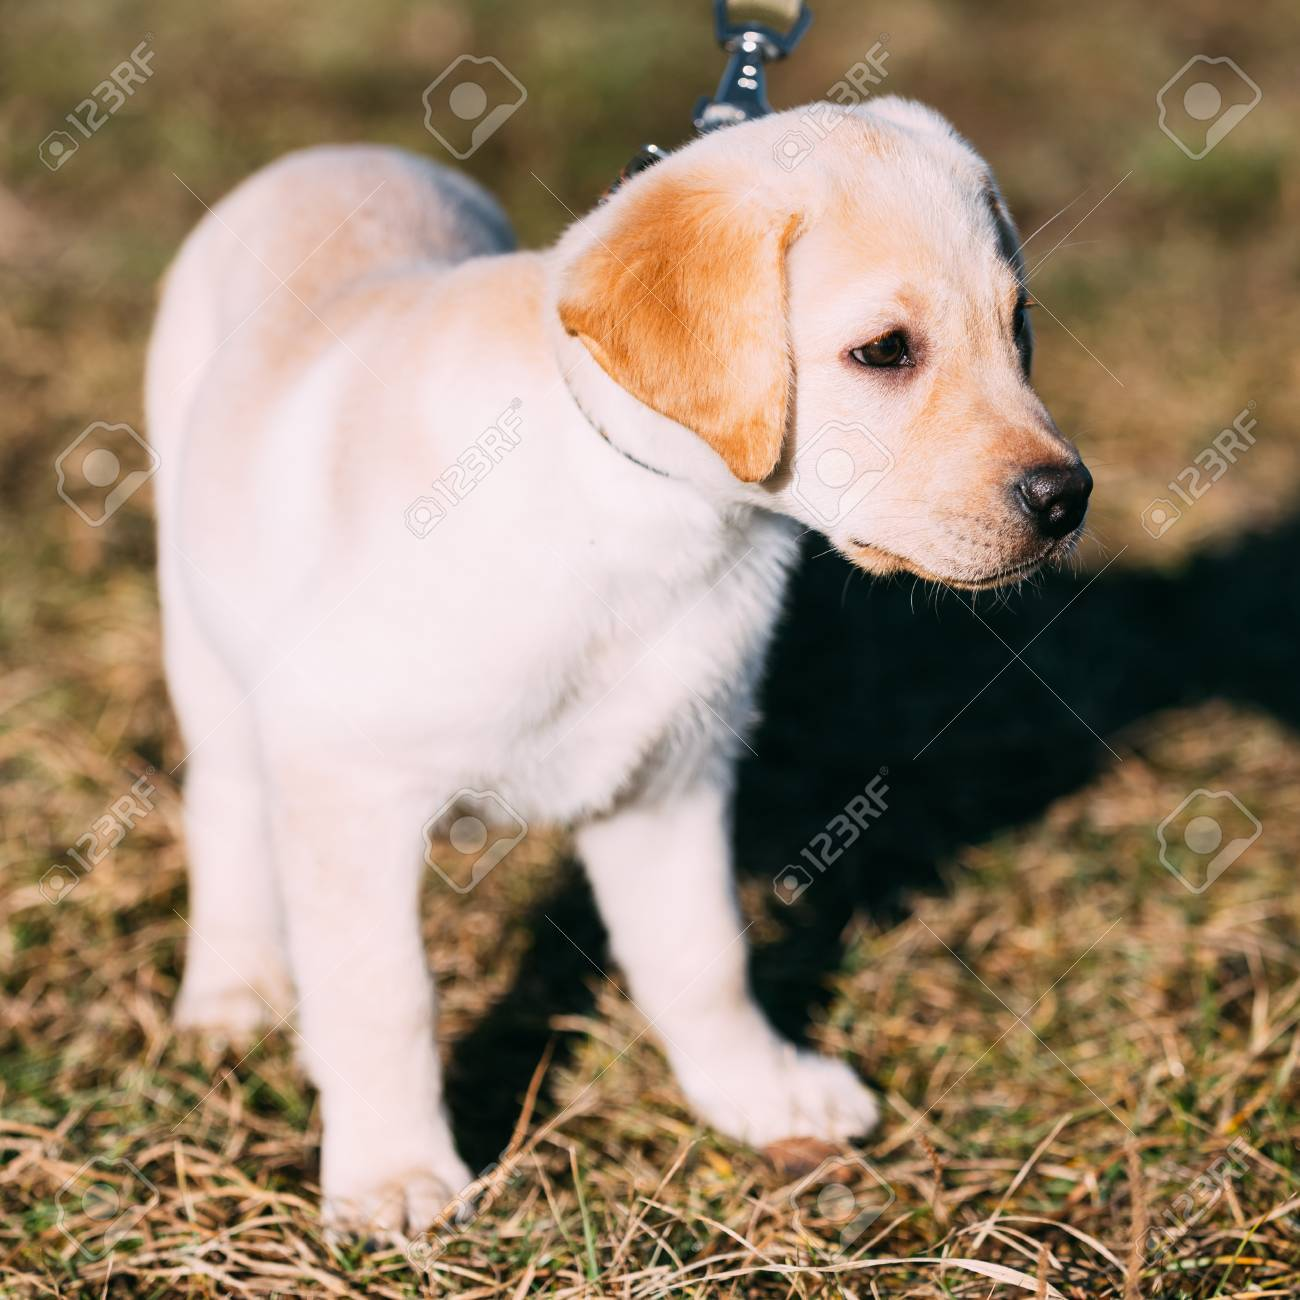 Beautiful White Dog Lab Labrador Retriever Pup Puppy Whelp Outdoor Stock Photo Picture And Royalty Free Image Image 39182318